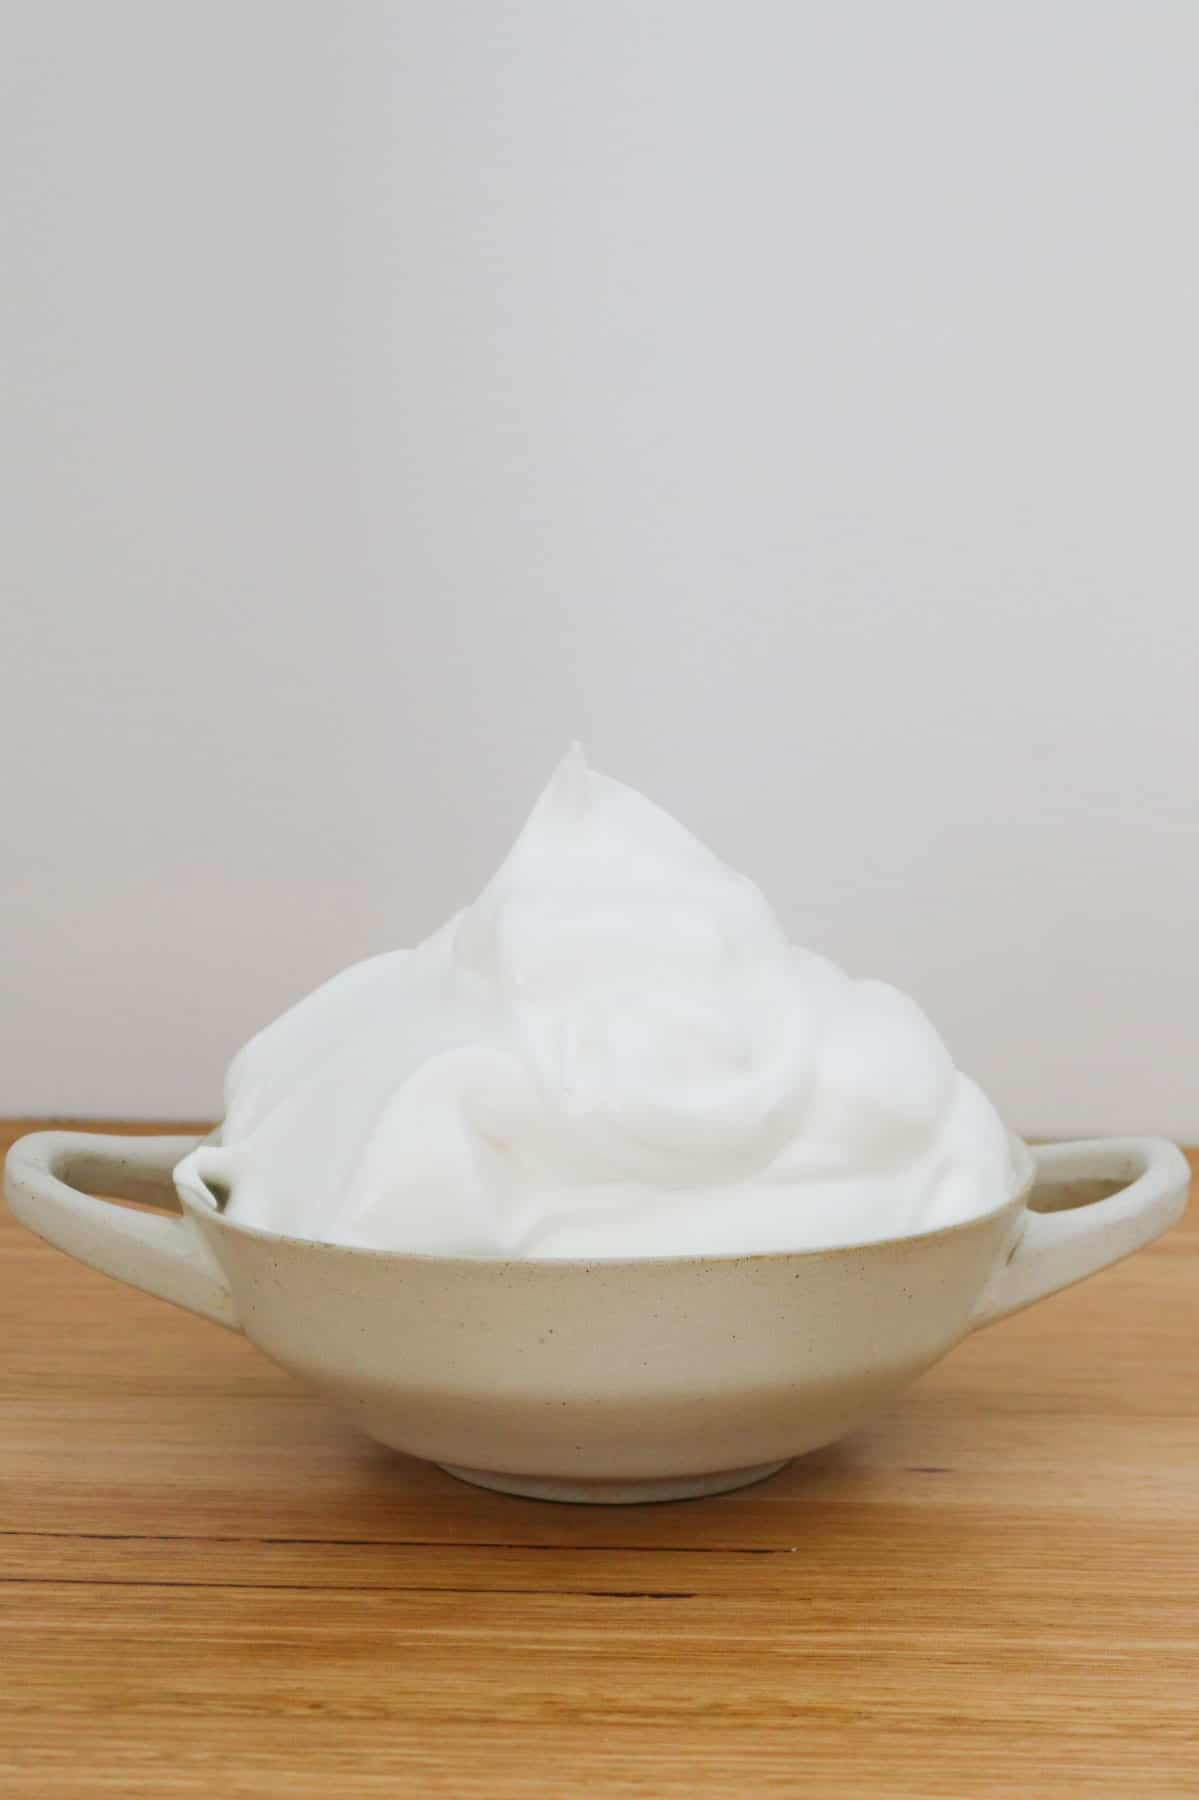 A bowl filled with creamy meringue.